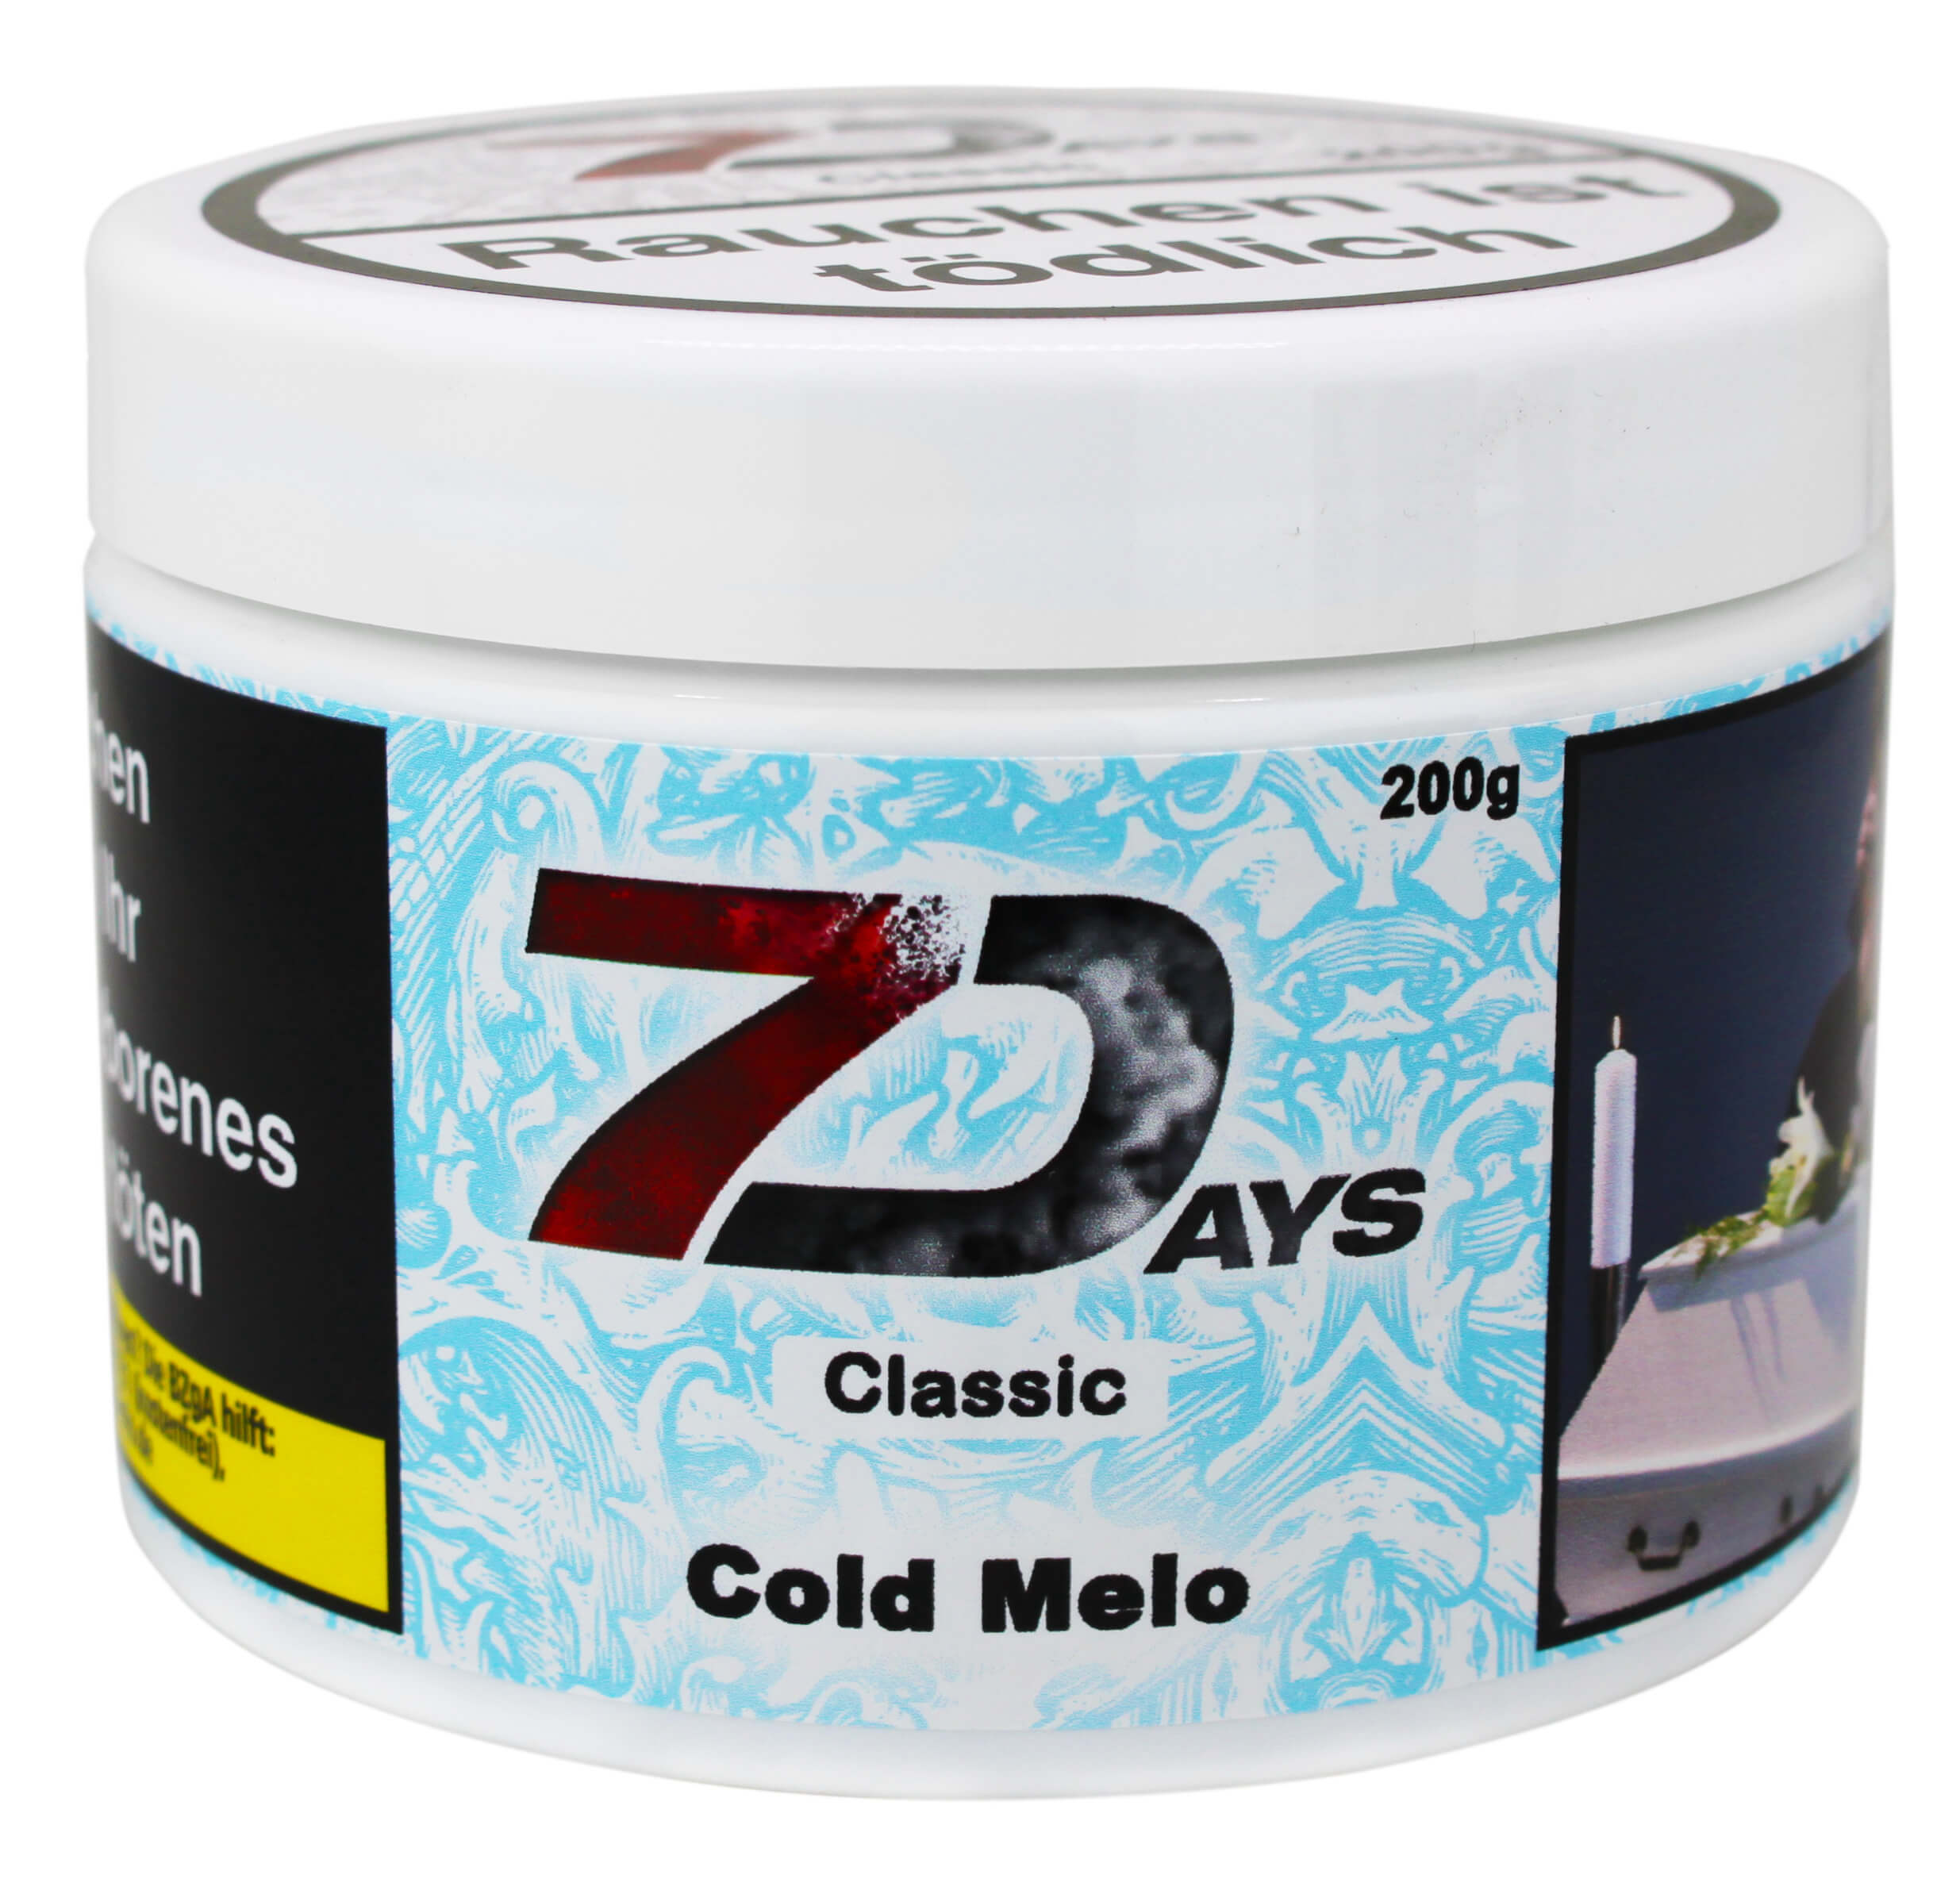 7 Days Tabak - Cold Melo Classic 200g